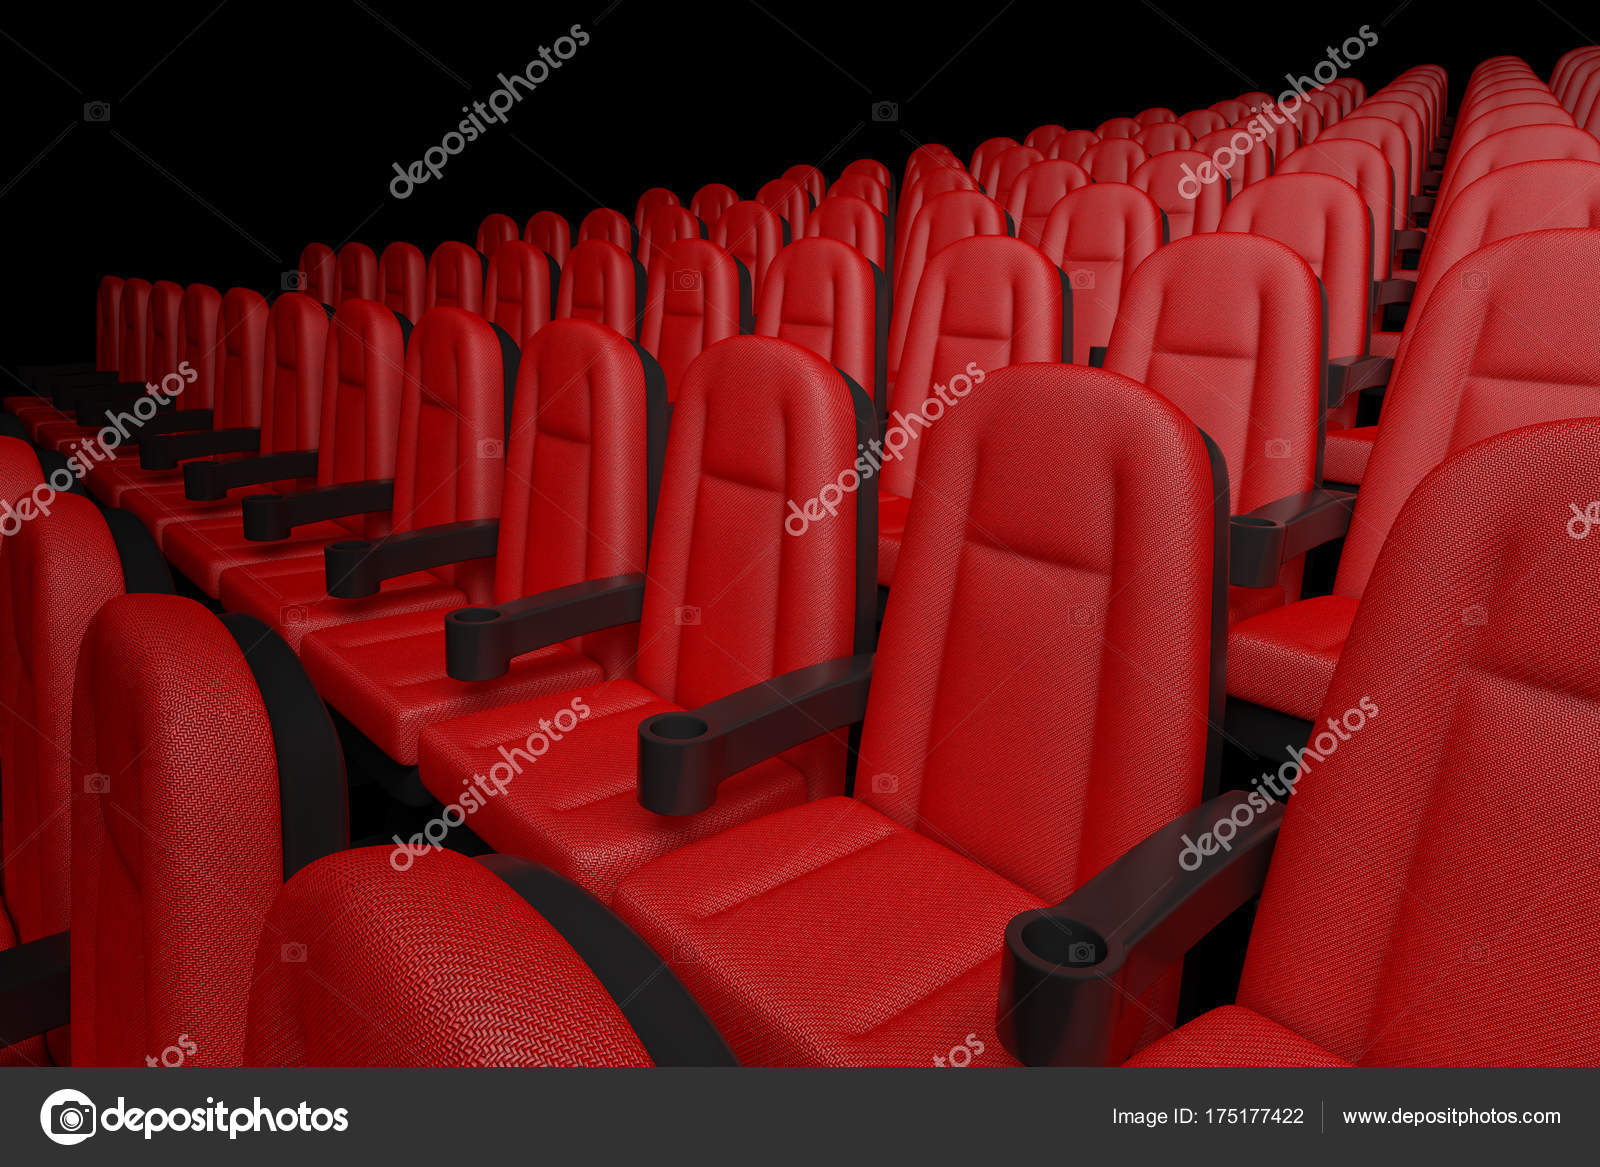 Rows of Red Cinema Movie Theater Comfortable Chairs  3d Renderin